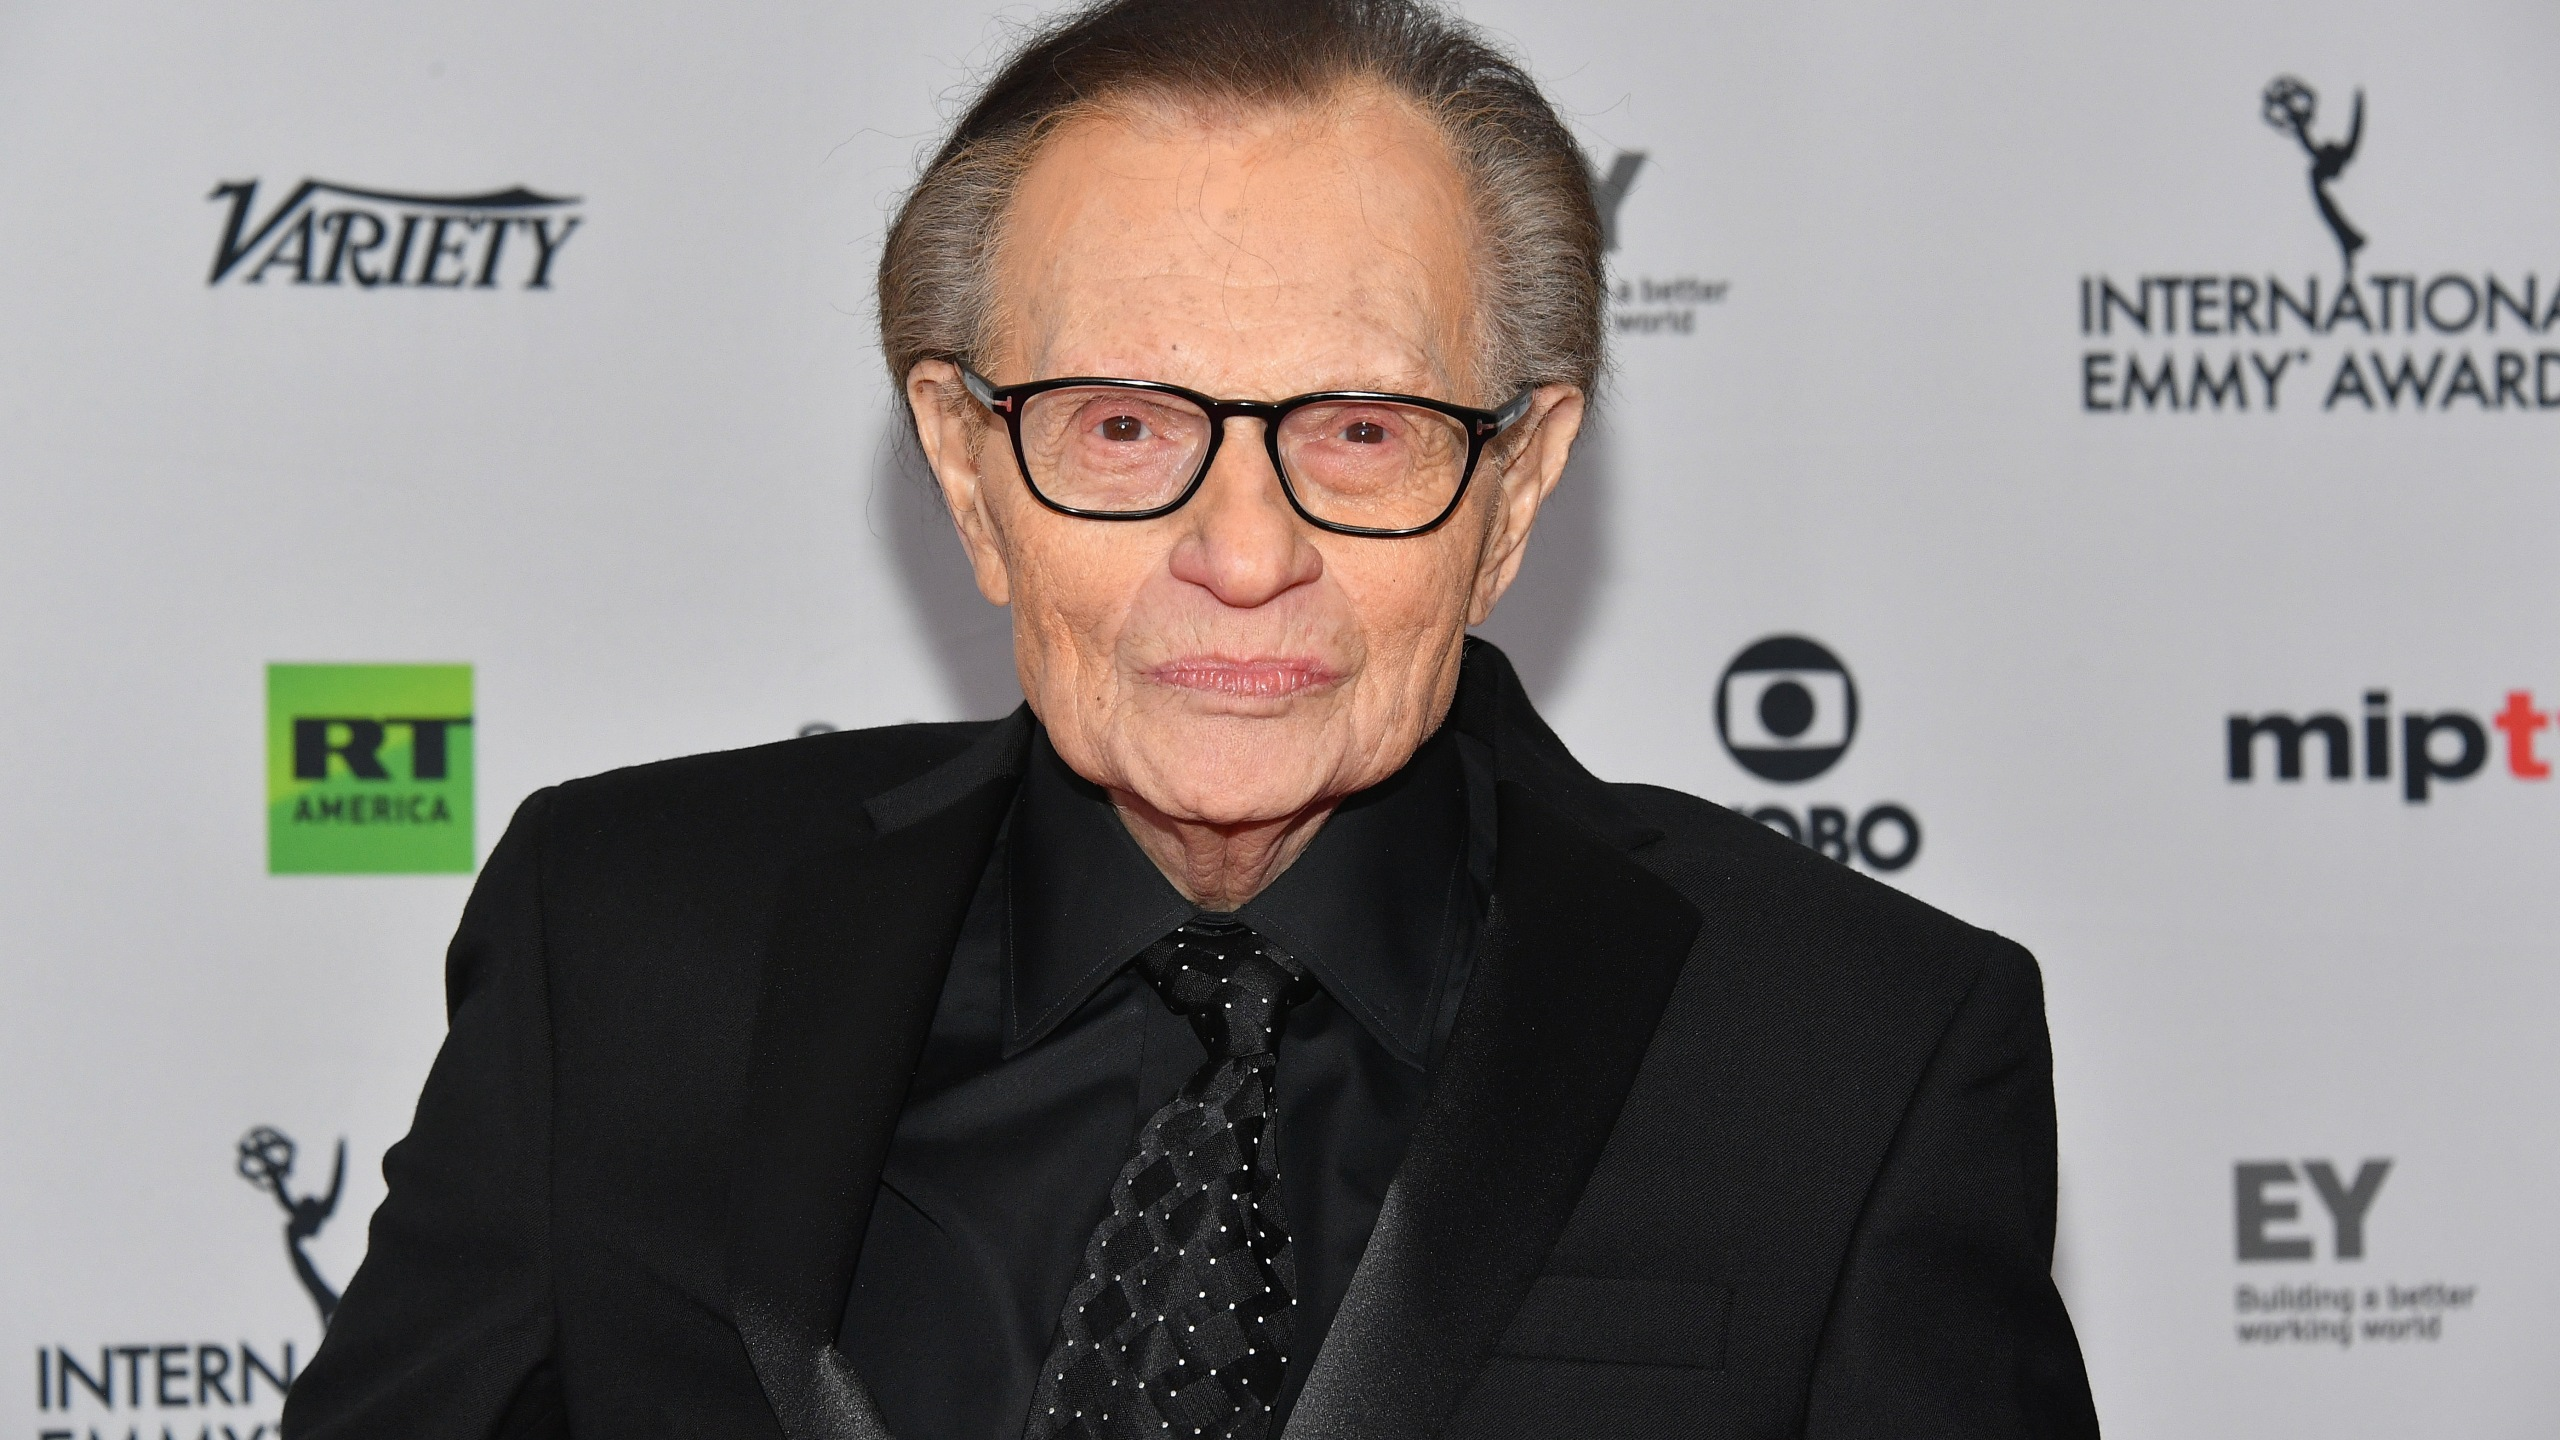 Larry King attends the 45th International Emmy Awards at the New York Hilton on Nov. 20, 2017, in New York City. (Dia Dipasupil/Getty Images)